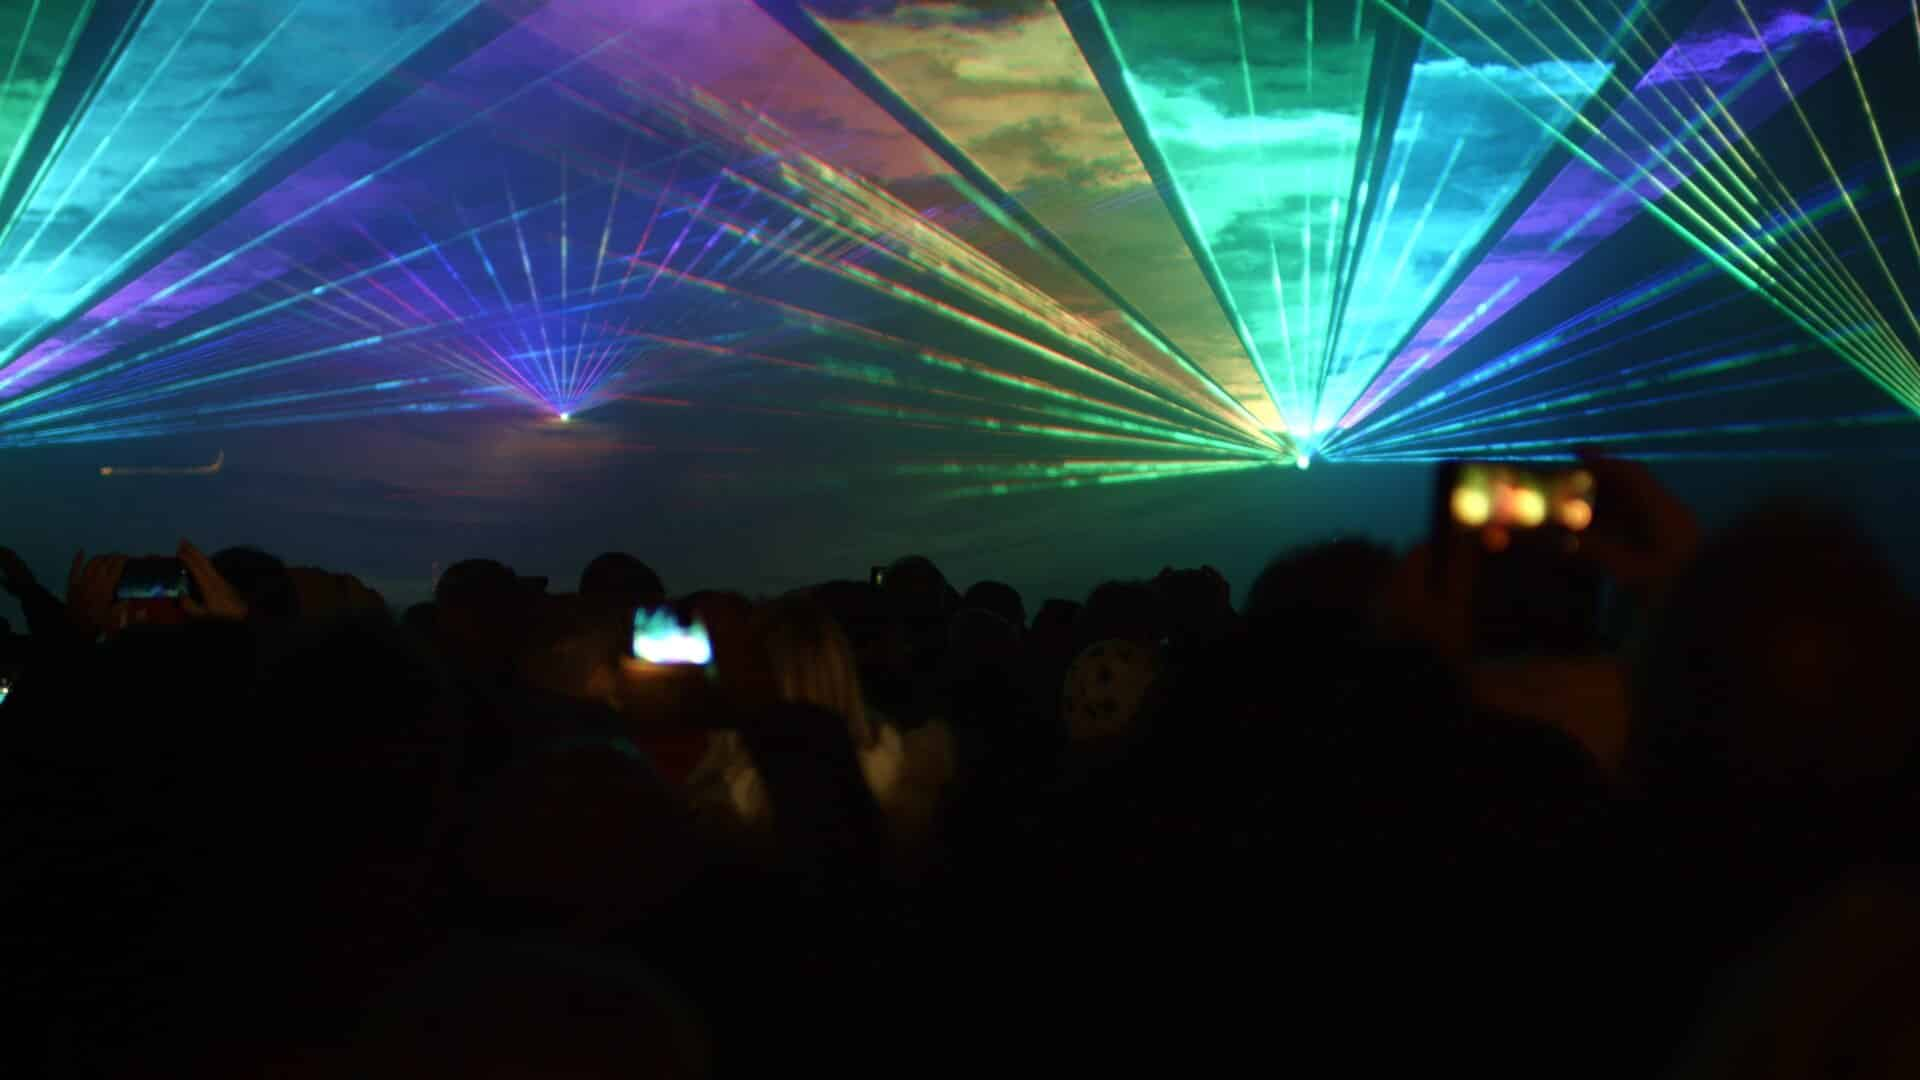 Lasershow an Silvester in Verl: Beamshow